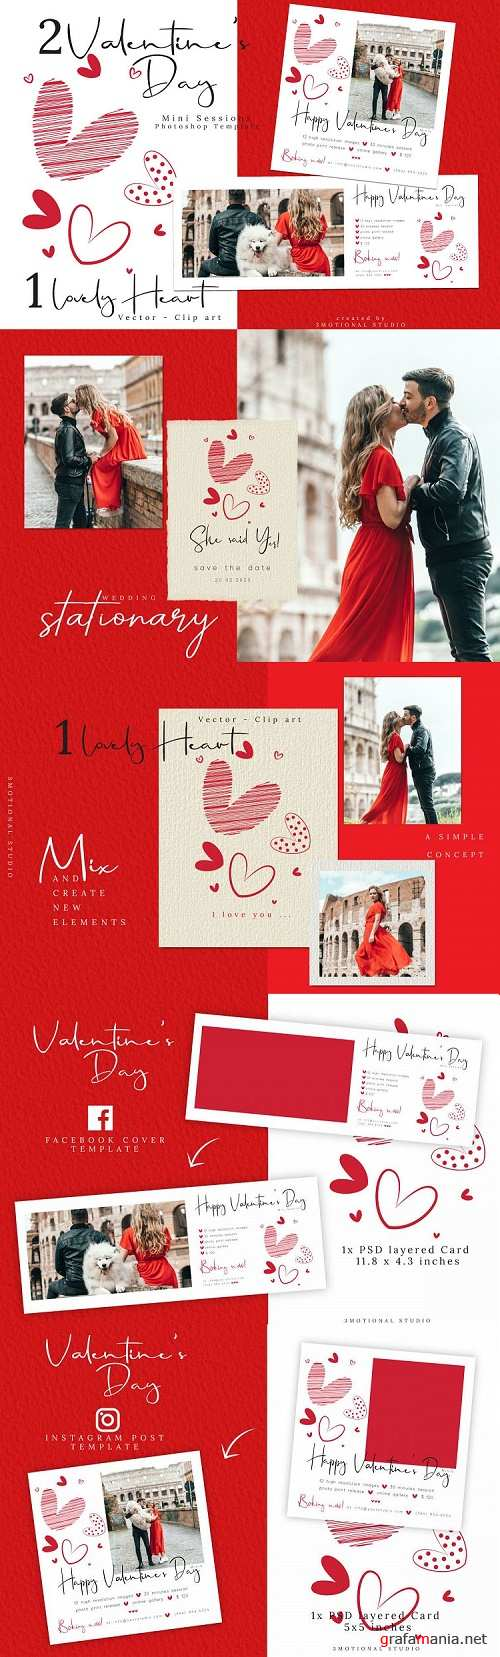 Valentine's Day Marketing Template - 417095